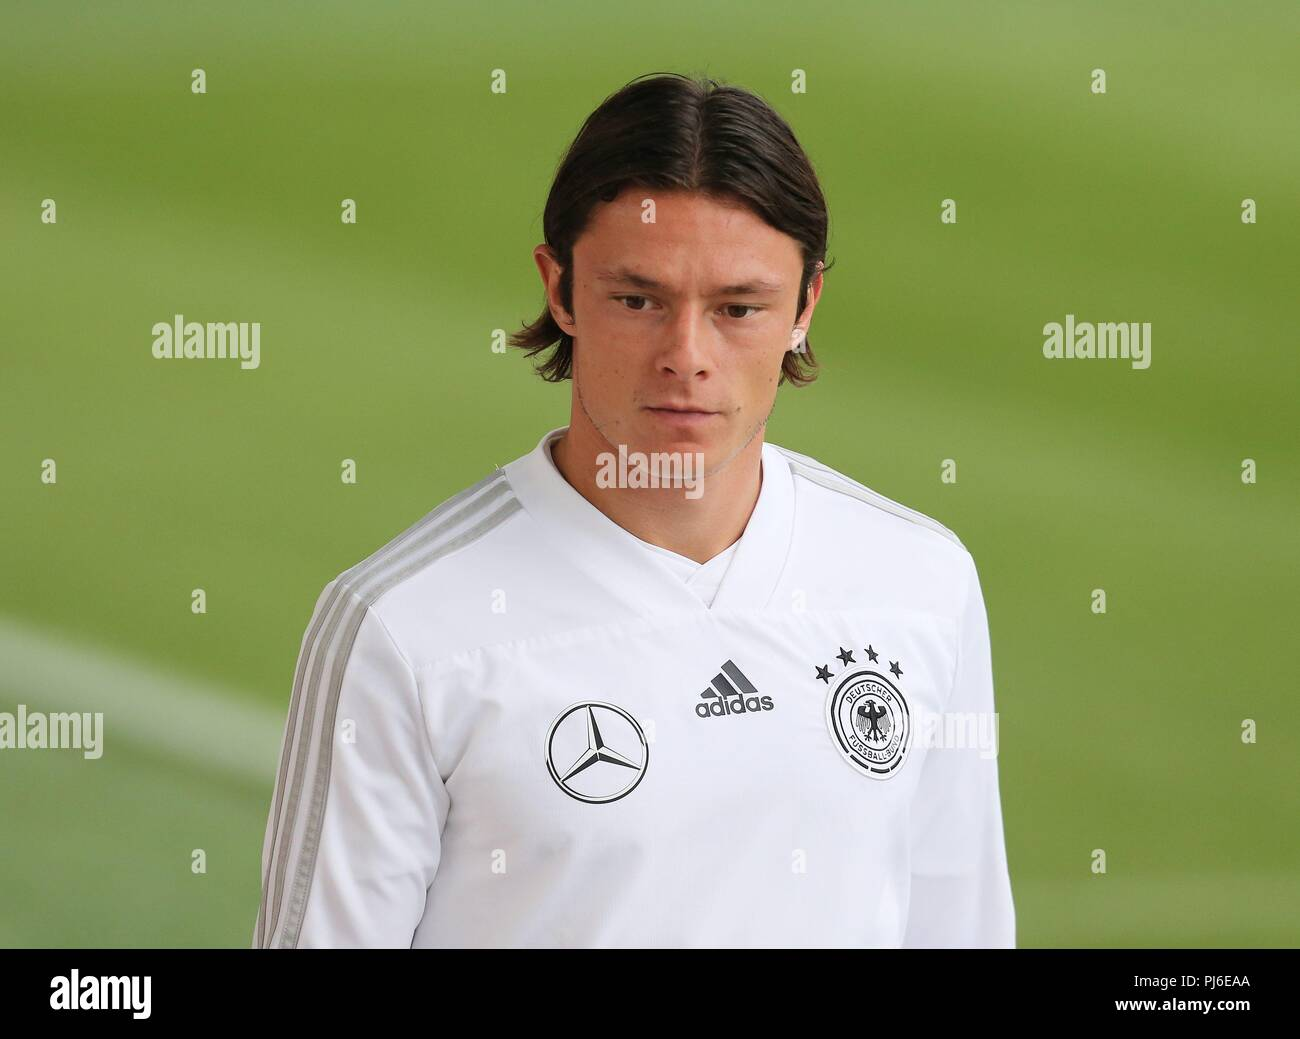 firo: 04.09.2018, Fuvuball, football, national team, training, Nico Schulz, DFB, half figure, Germany | usage worldwide - Stock Image